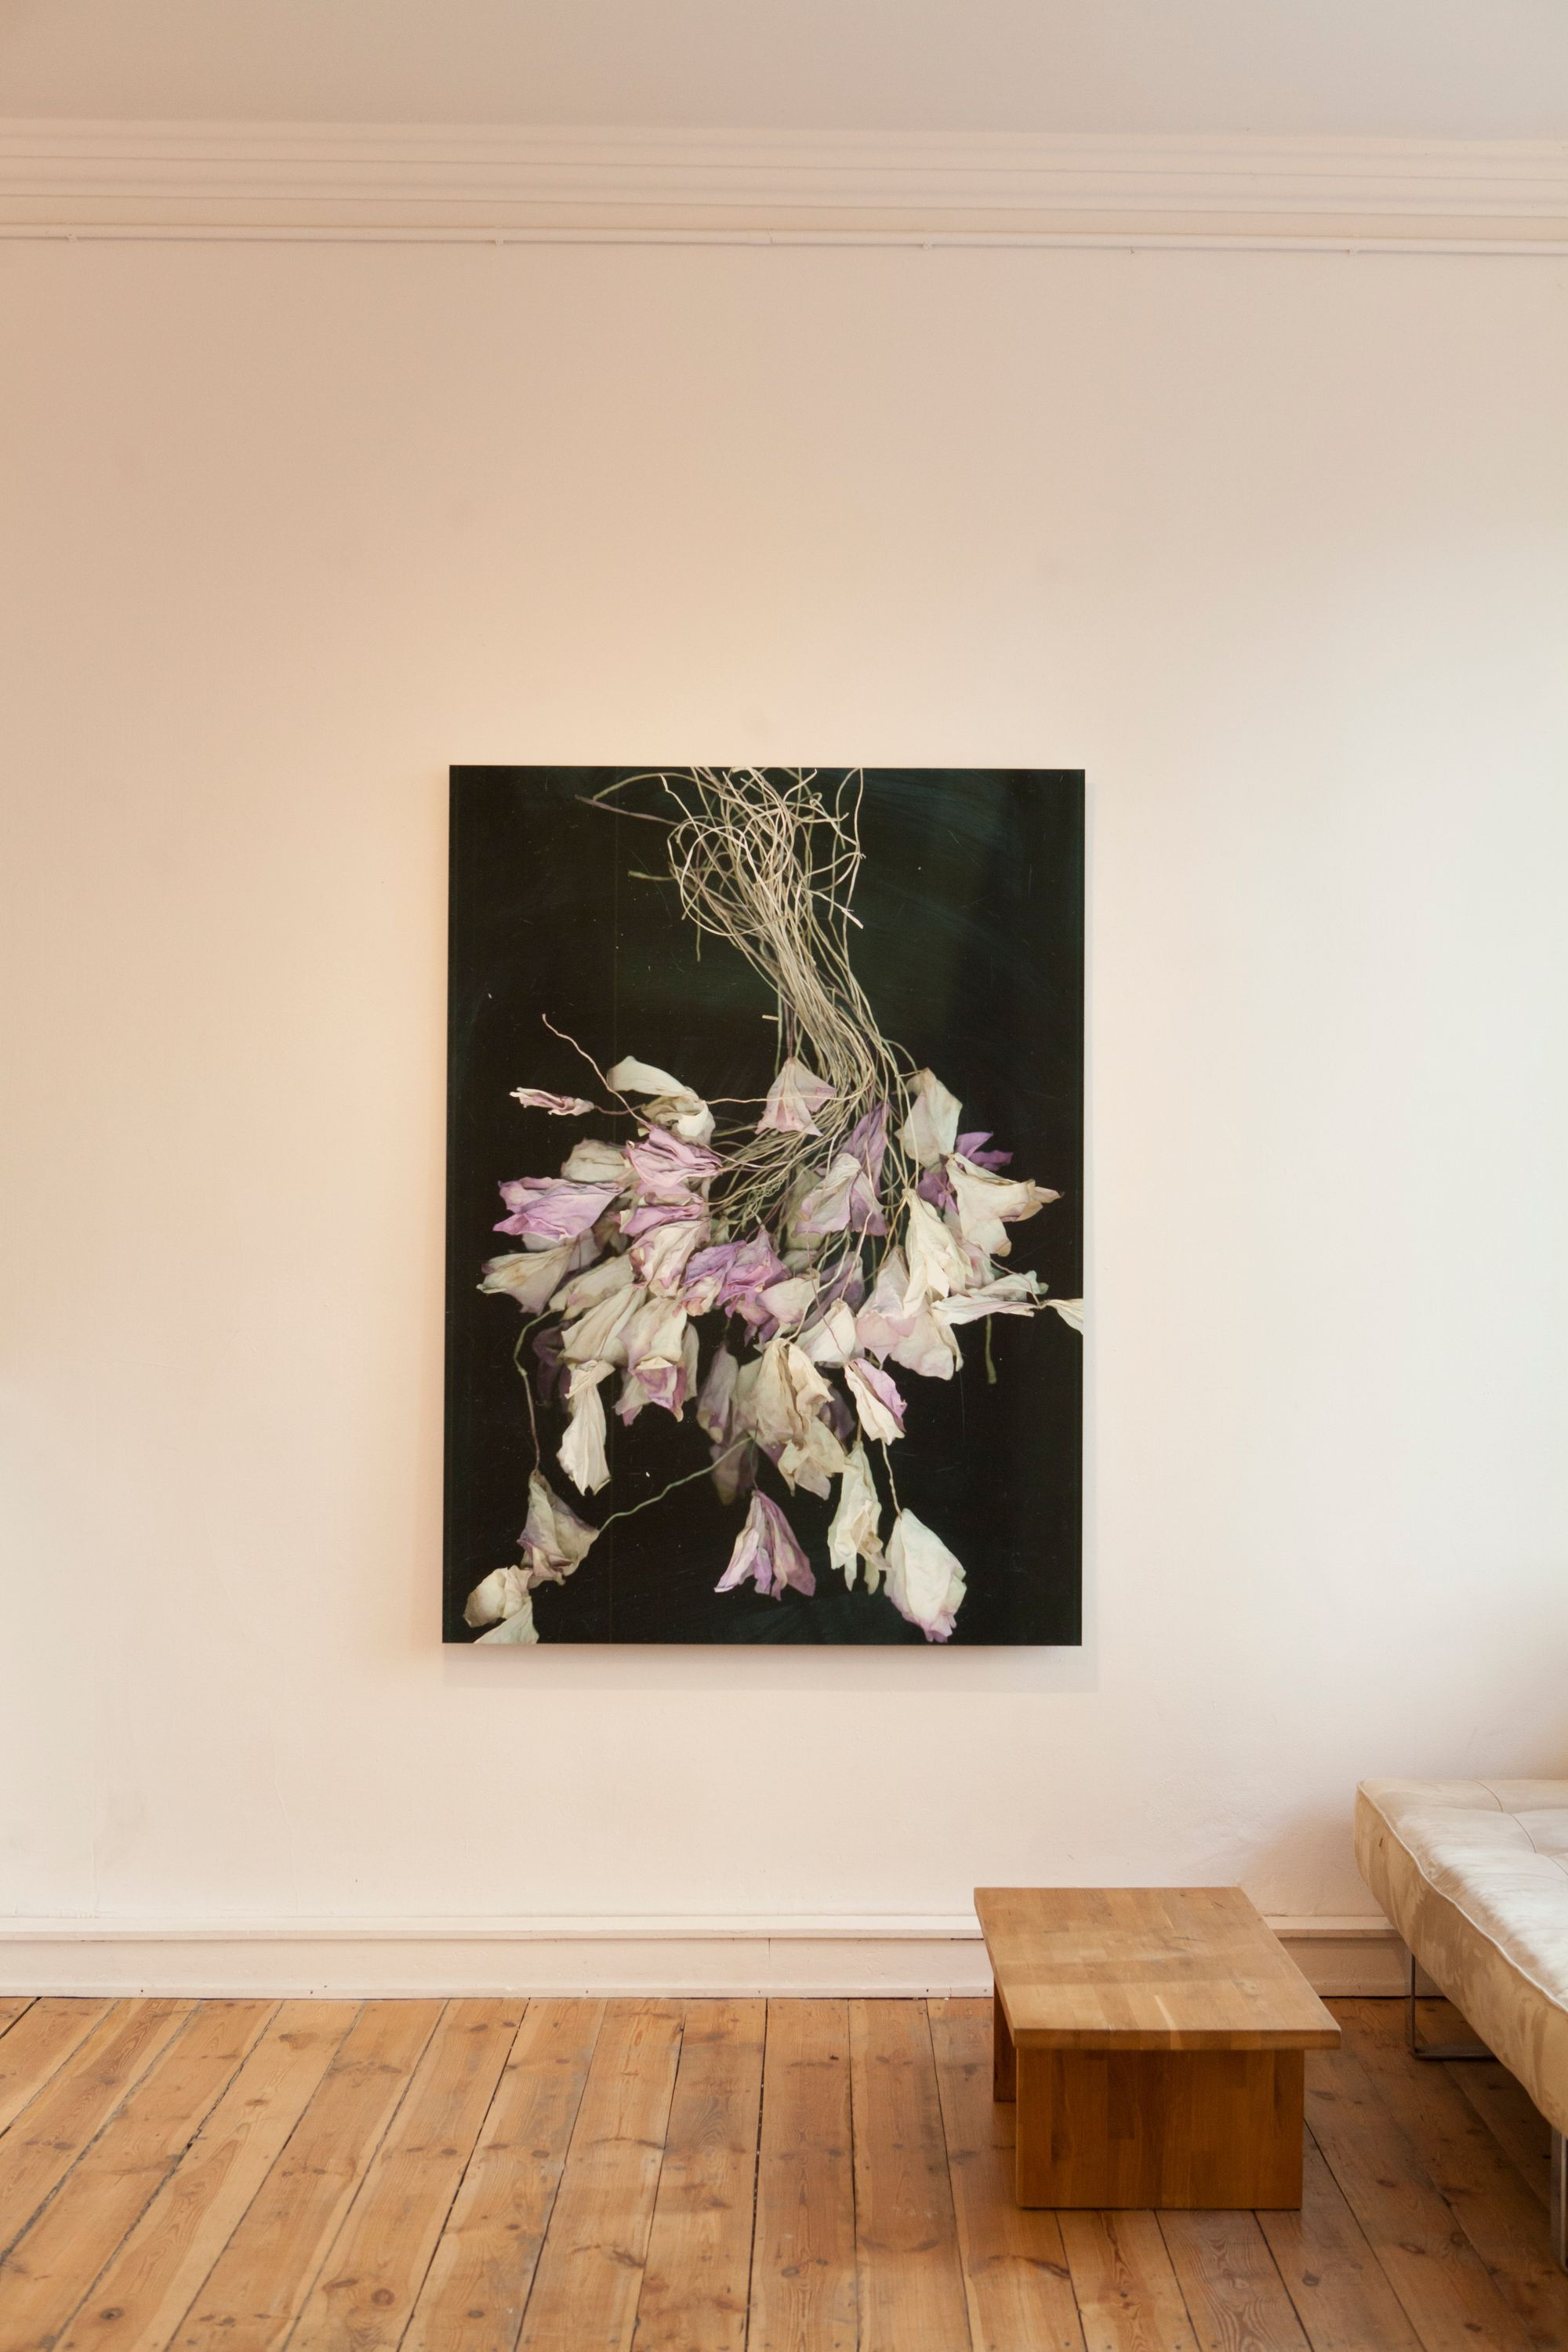 Aurore by Mathilde Nardone, Luisa Catucci Gallery (2 of 3)